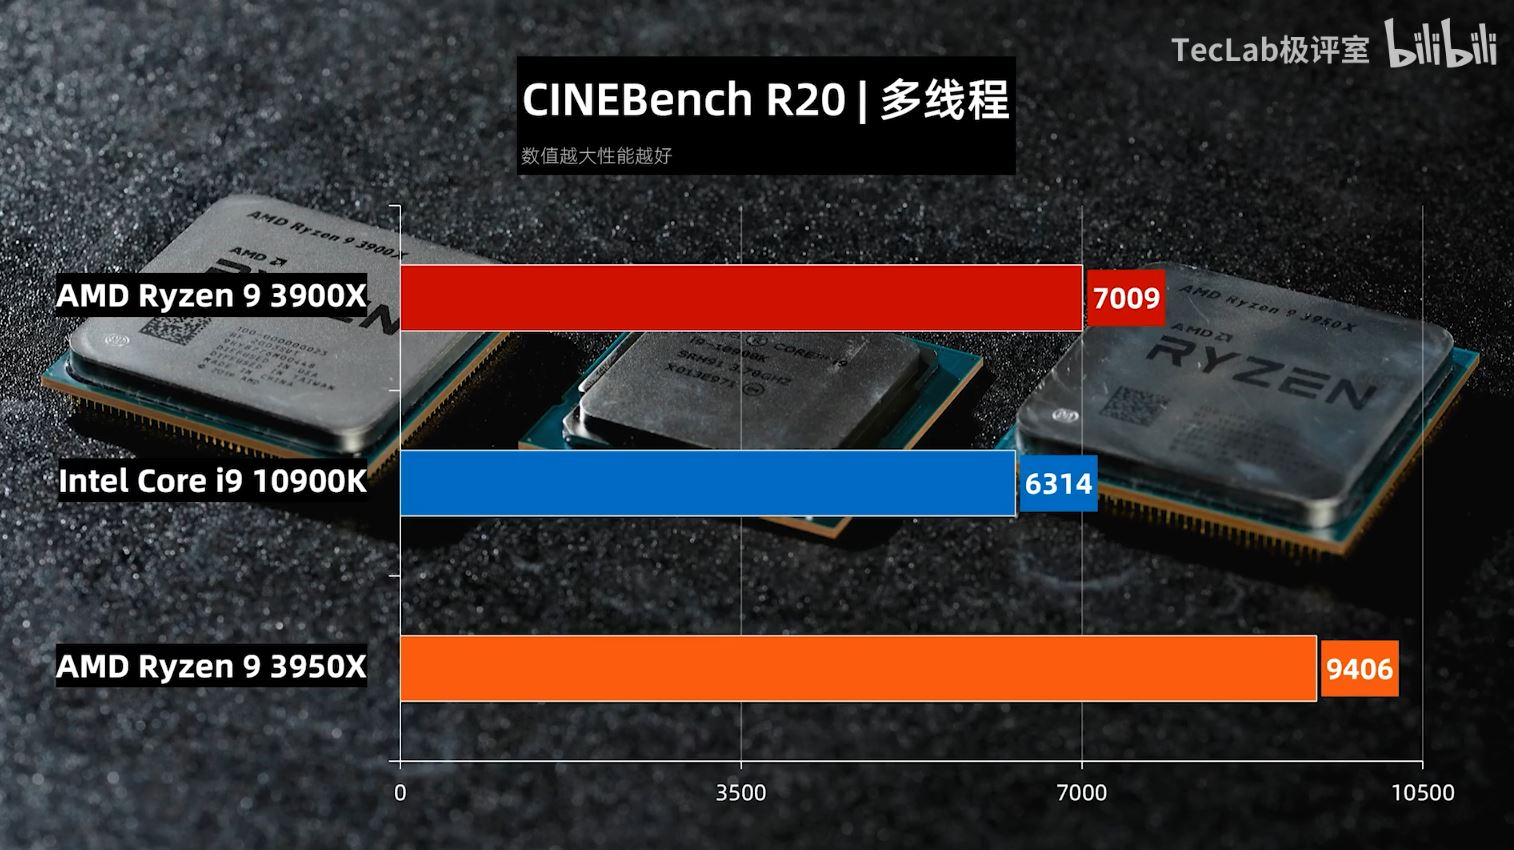 https://cdn.wccftech.com/wp-content/uploads/2020/05/TecLab-Core-i9-10900K-vs-Ryzen-9-3950X-vs-Ryzen-3-3900X-Cinebench-R20.jpg